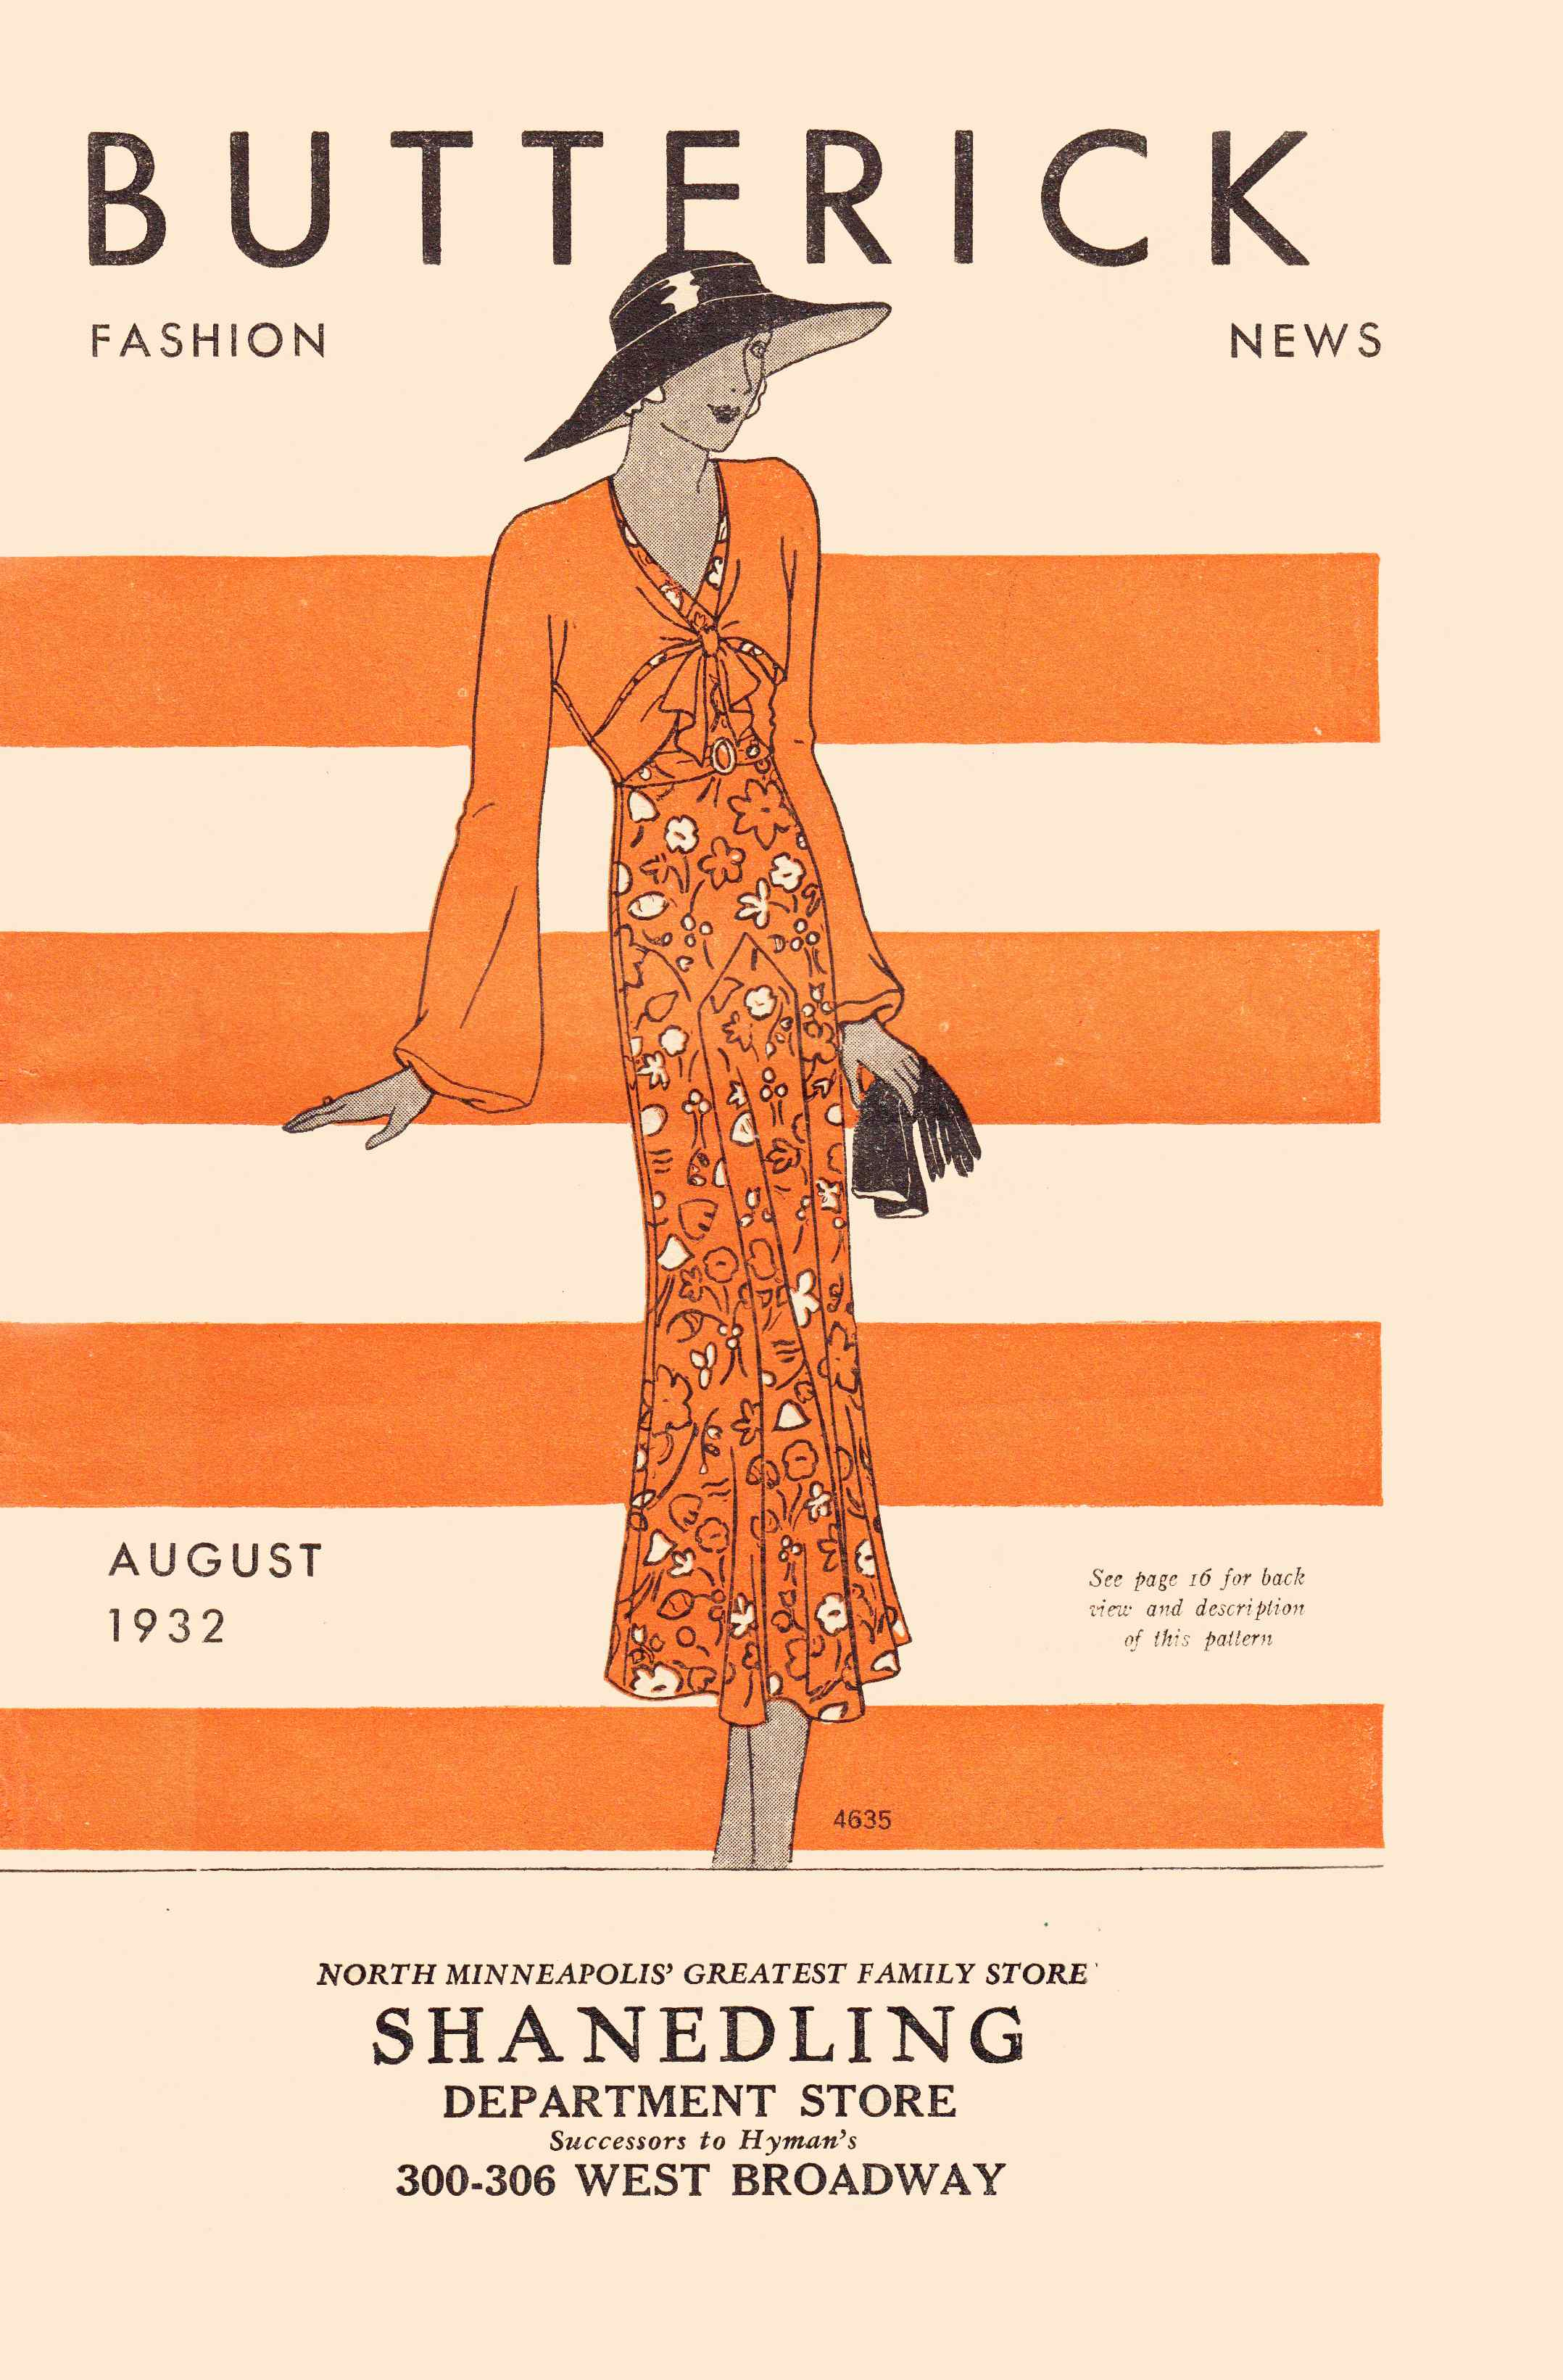 Butterick Fashion News August 1932